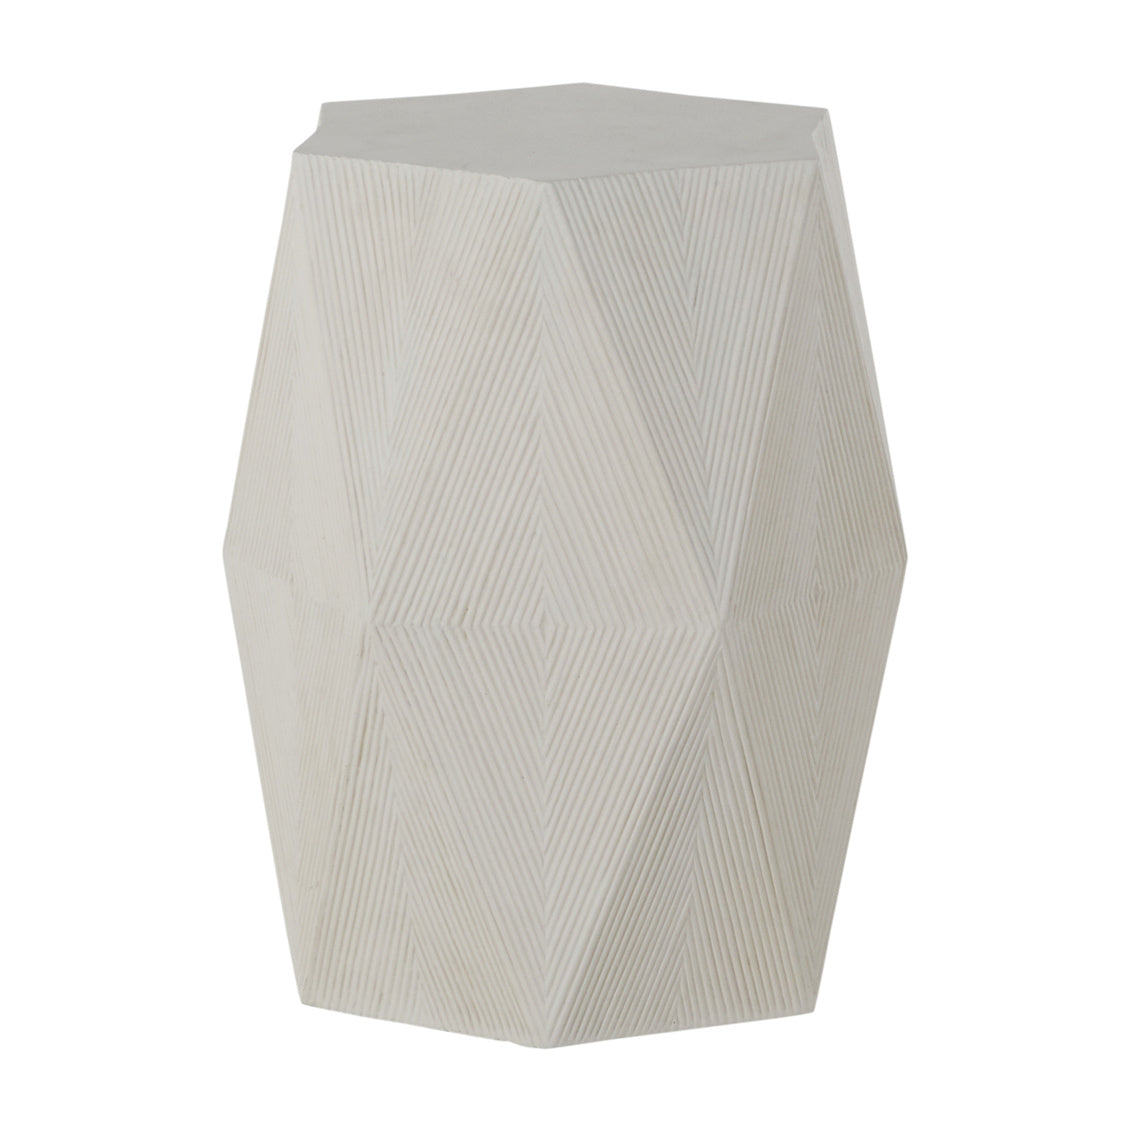 White Cast Stone Geometric Ribbed Side Table W16.25 x D13.5 x H24.5